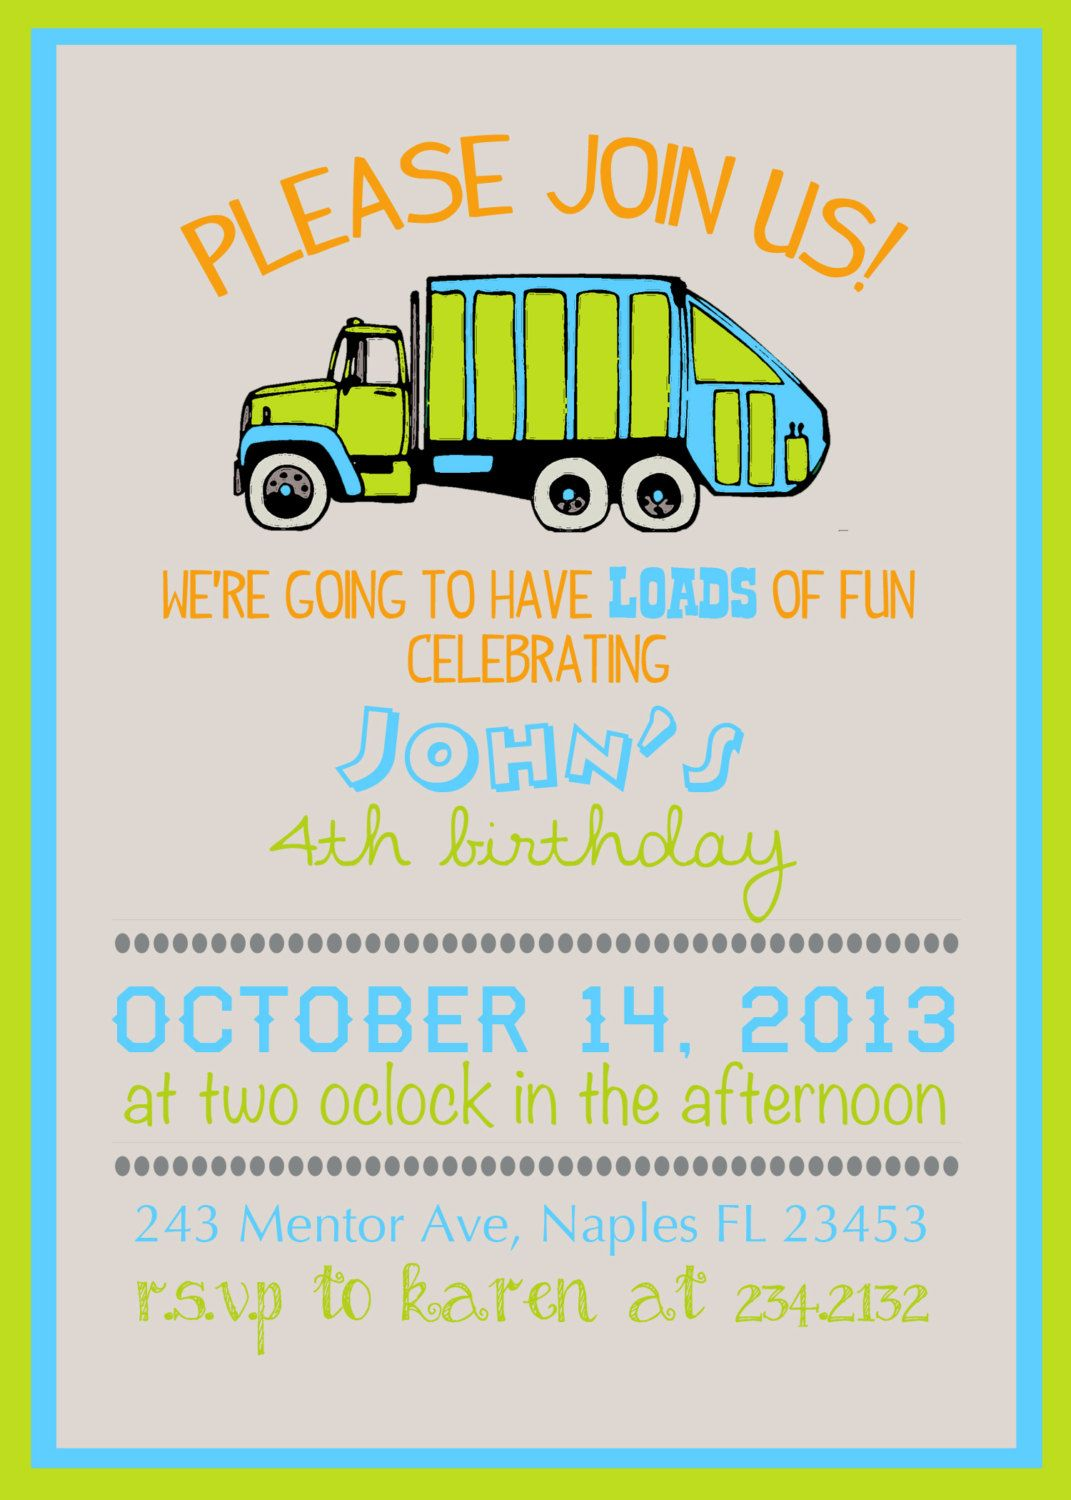 Loads of fun garbage truck birthday invite, personalized and ...